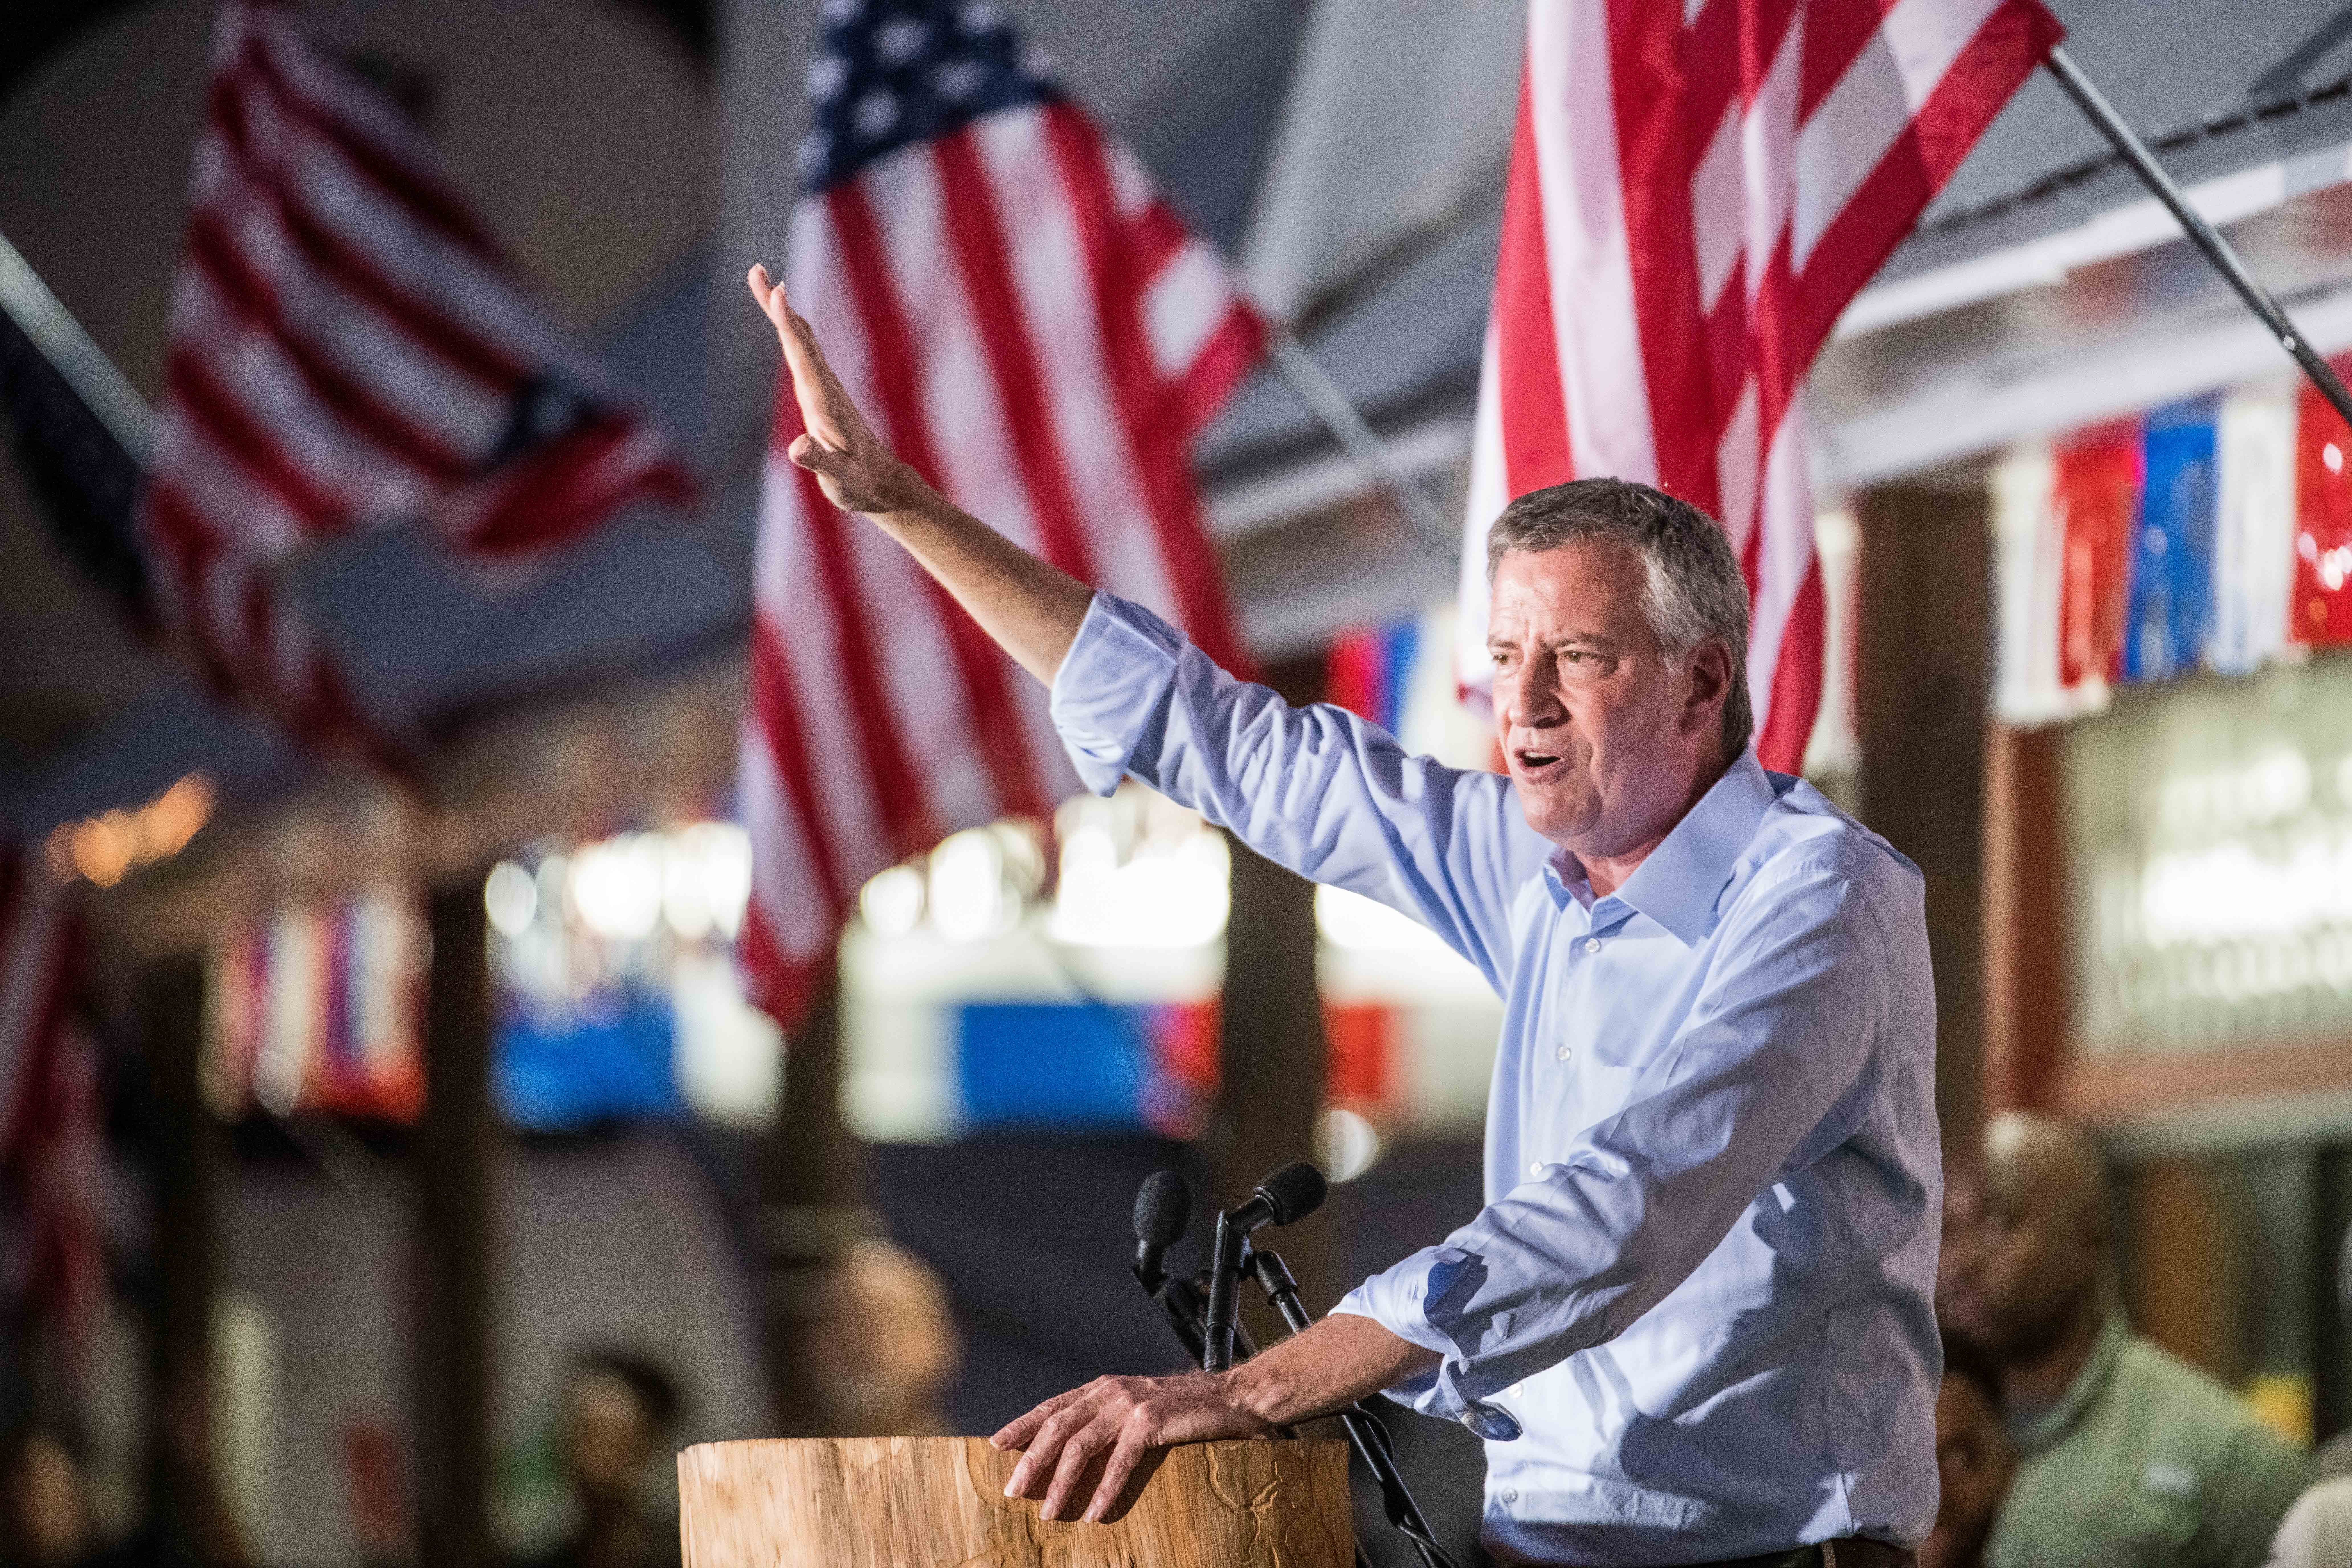 Democratic presidential candidate and New York City Mayor Bill de Blasio stands speaking from behind a podium with one arm raised. Behind him are several America flags.